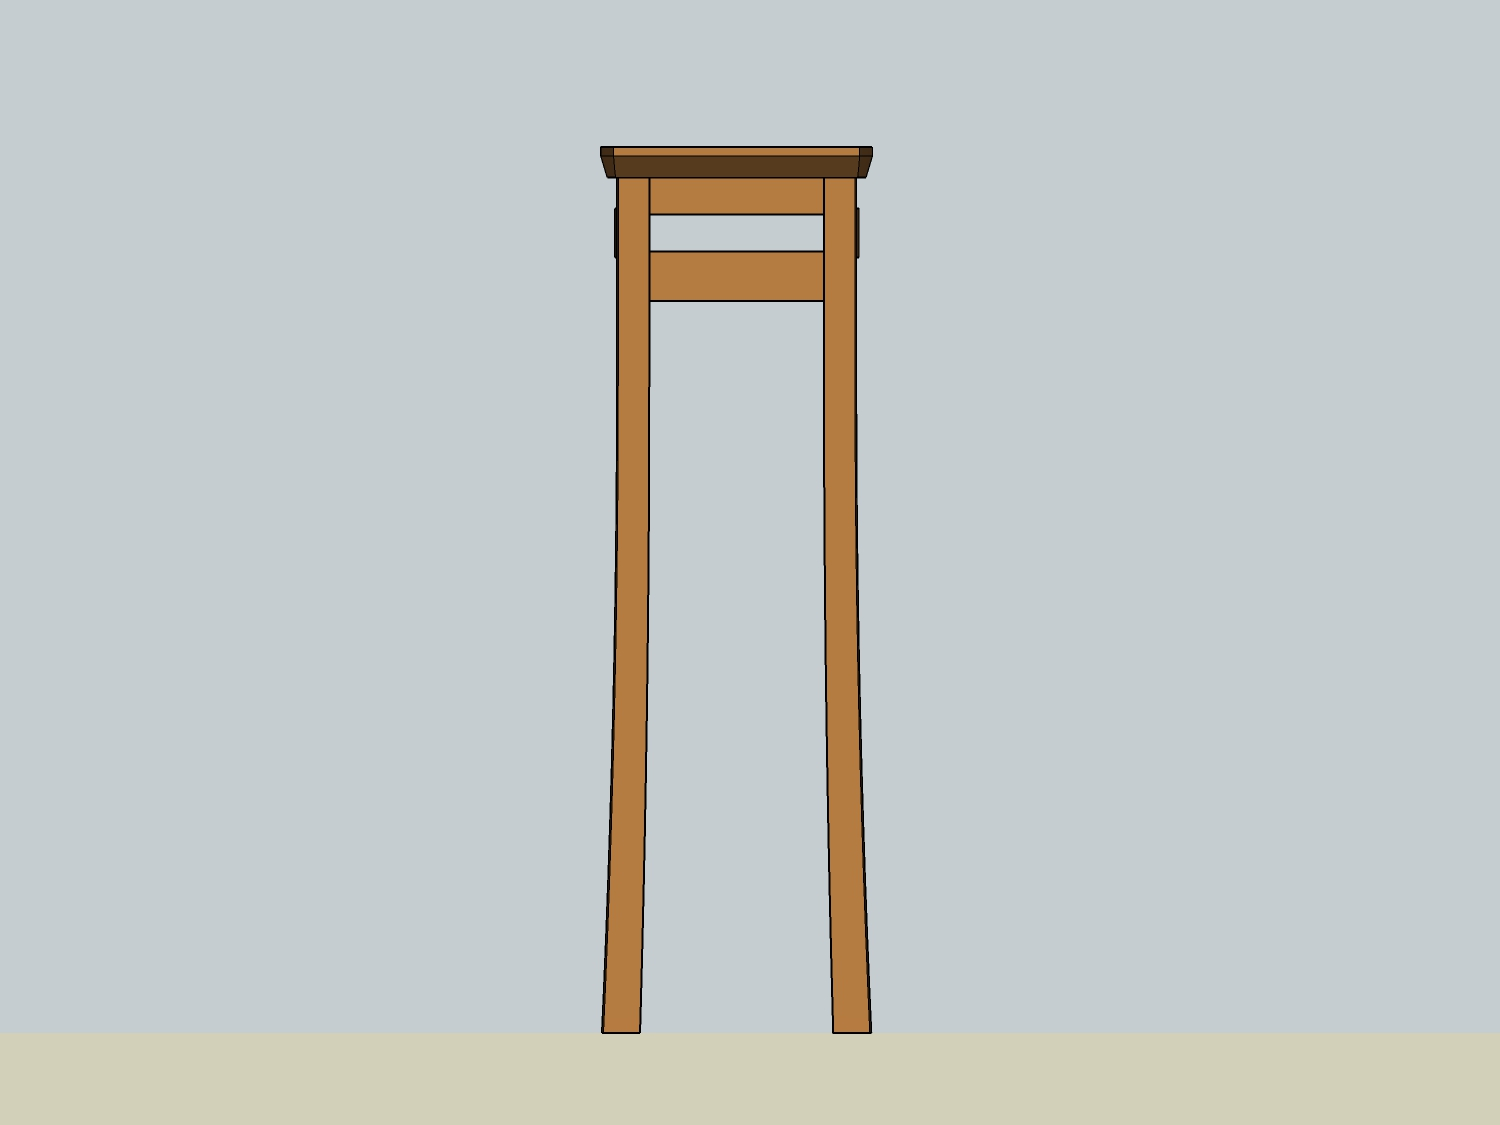 2015-06-30 Barsky Accent Table End View 1500.jpg